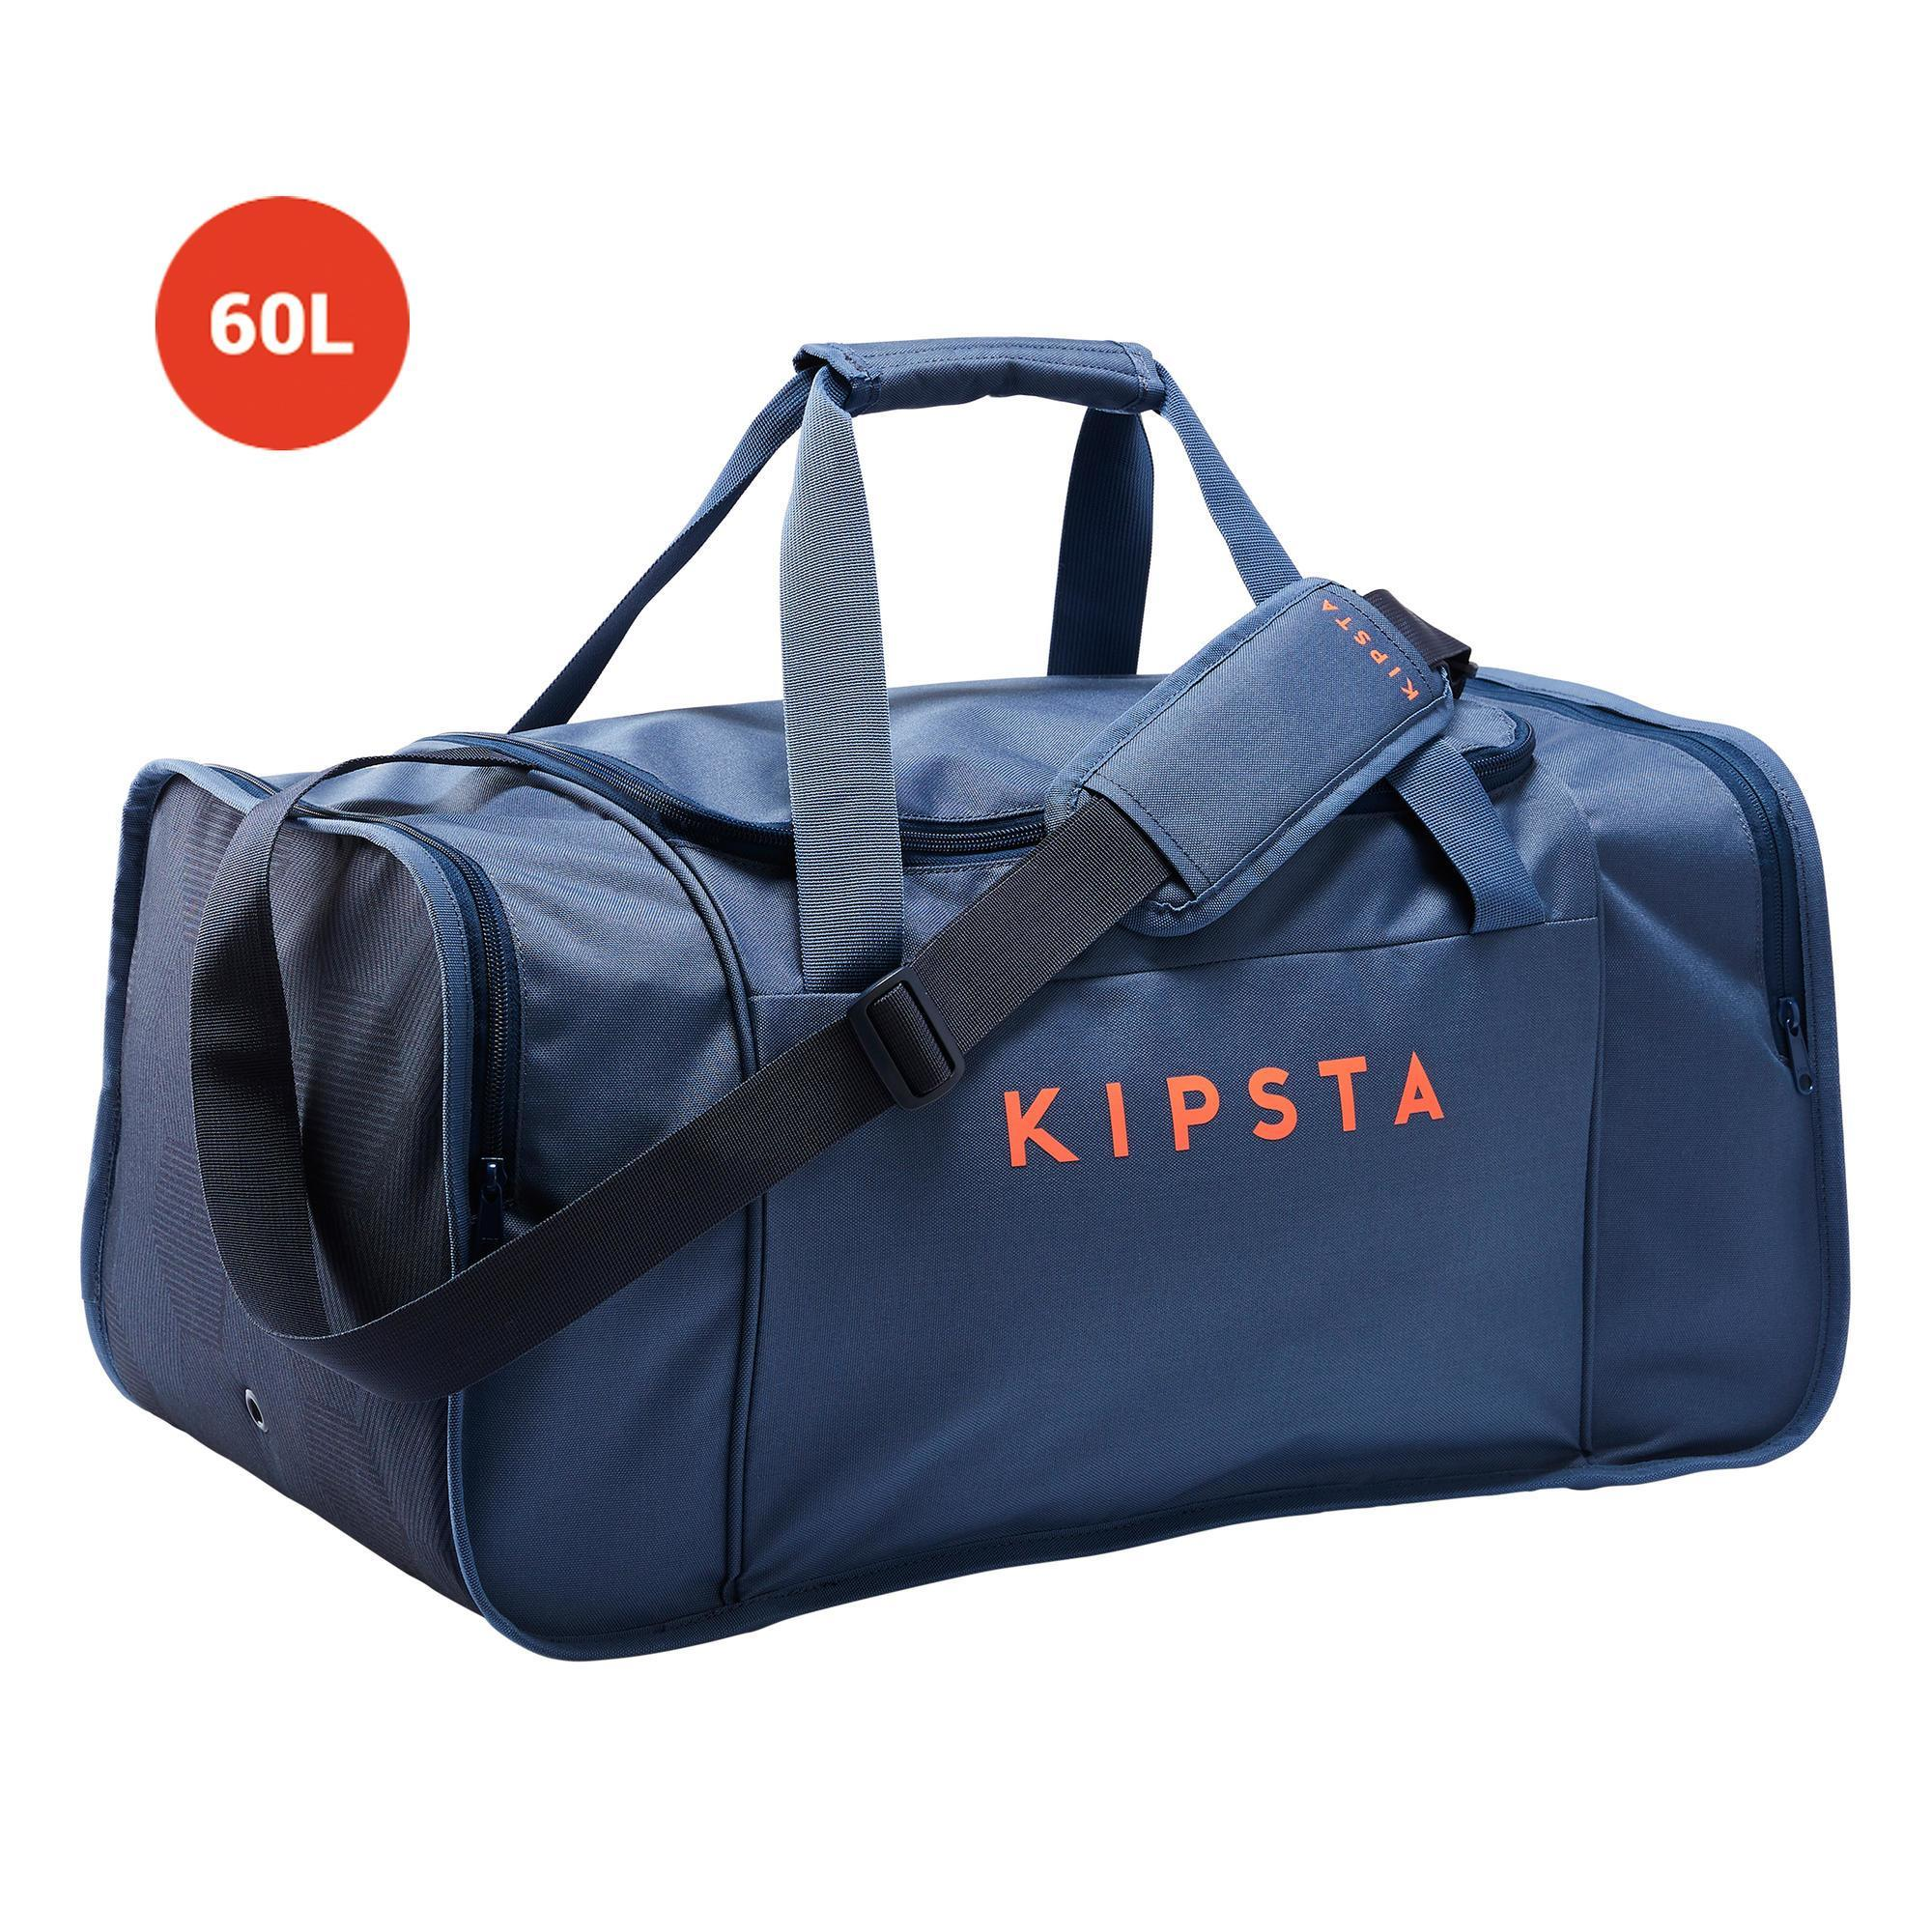 Sporttasche Kipocket 60 Liter blau/orange